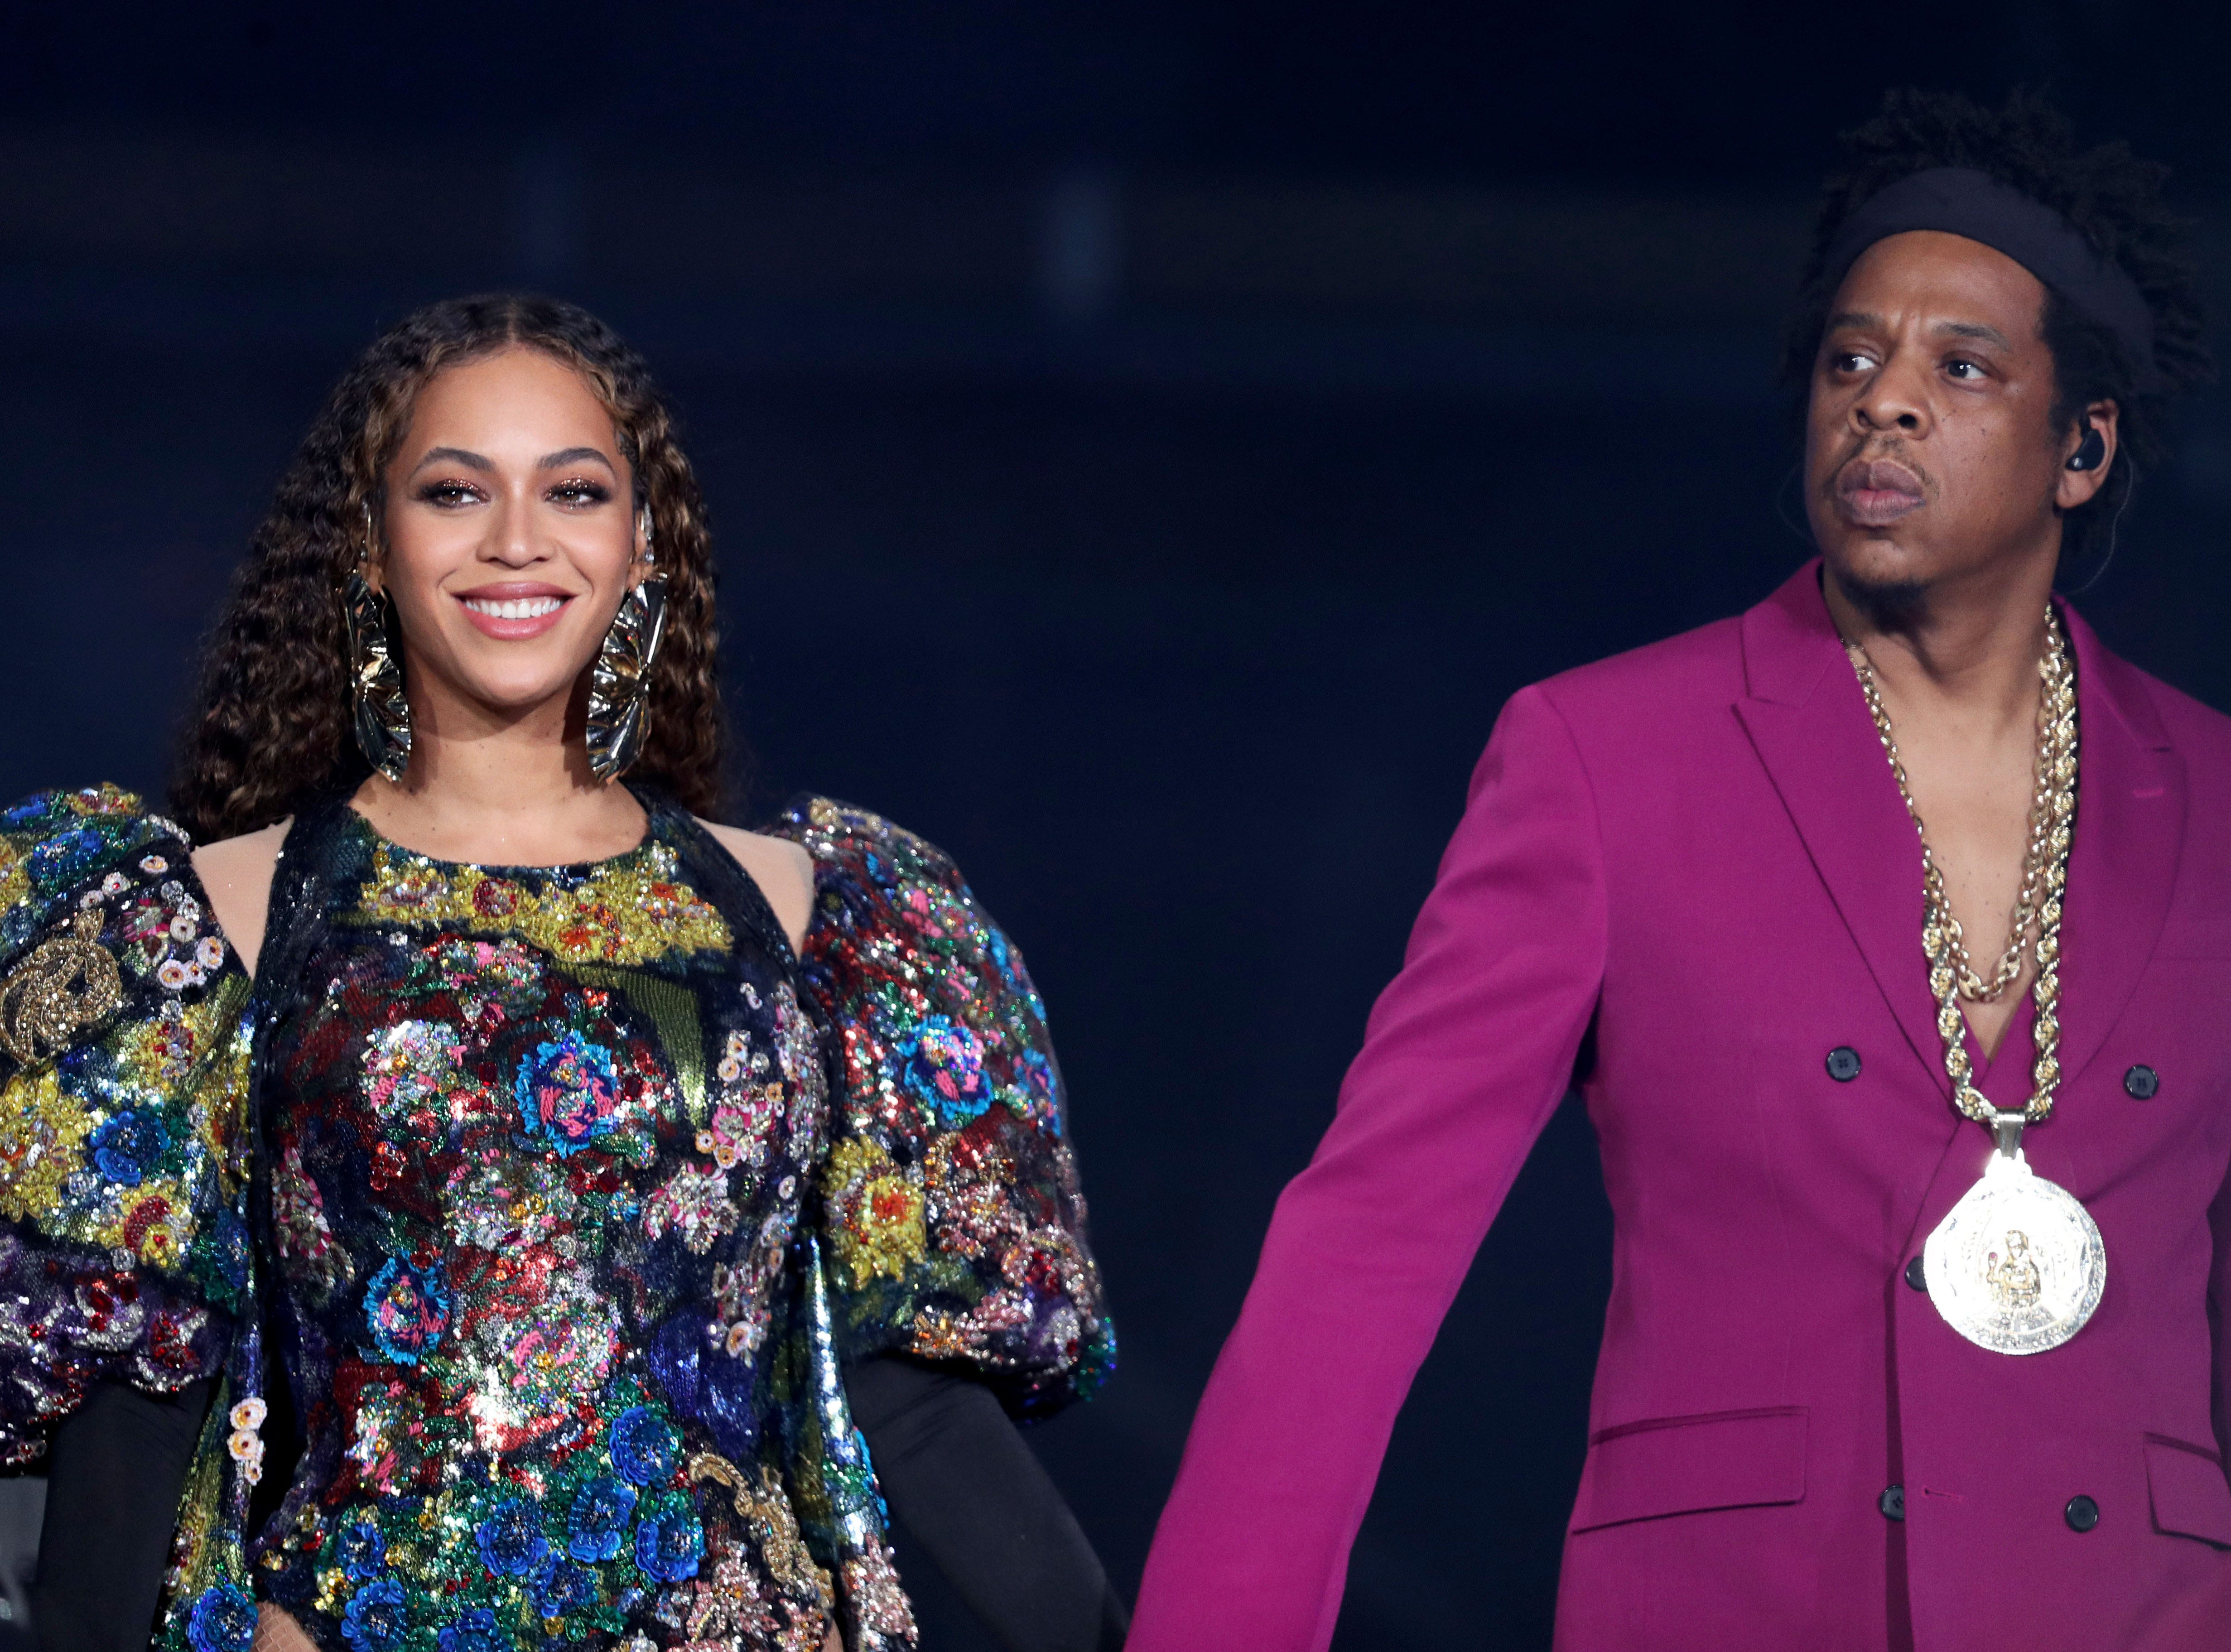 JOHANNESBURG, SOUTH AFRICA - DECEMBER 2:  Beyonce and Jay-Z perform during the Global Citizen Festival: Mandela 100 at FNB Stadium on December 2, 2018 in Johannesburg, South Africa. (Photo by Raven Varona/Parkwood/PictureGroup) [Via MerlinFTP Drop]